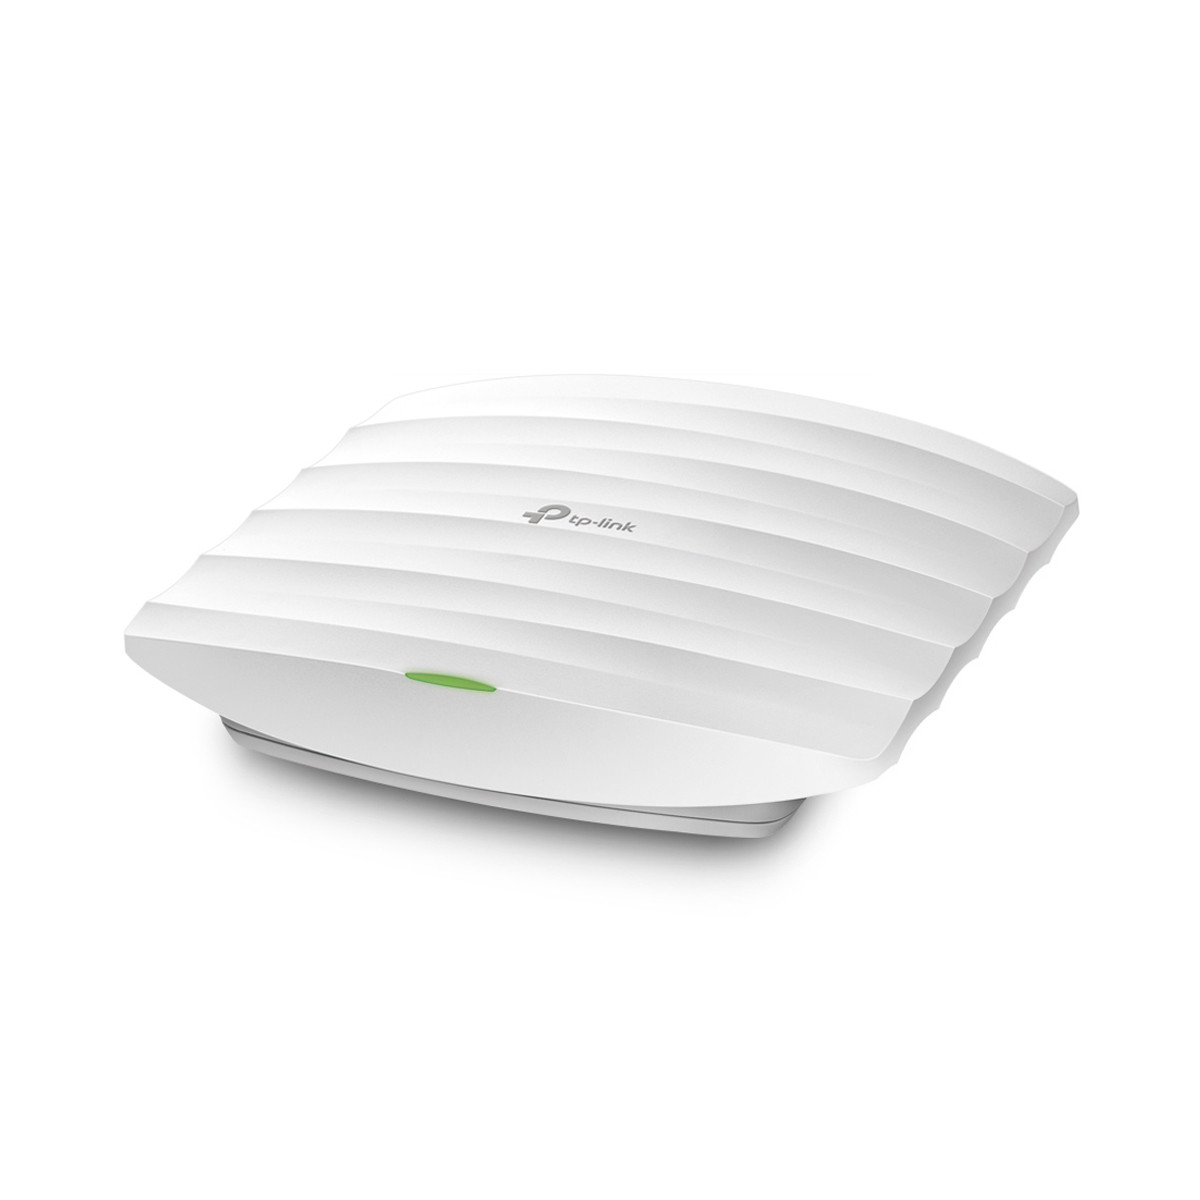 Access Point TP-LINK AC1350 EAP225 450Mbps Wireless Dual Band Gigabit MU-MIMO | Montável em Teto